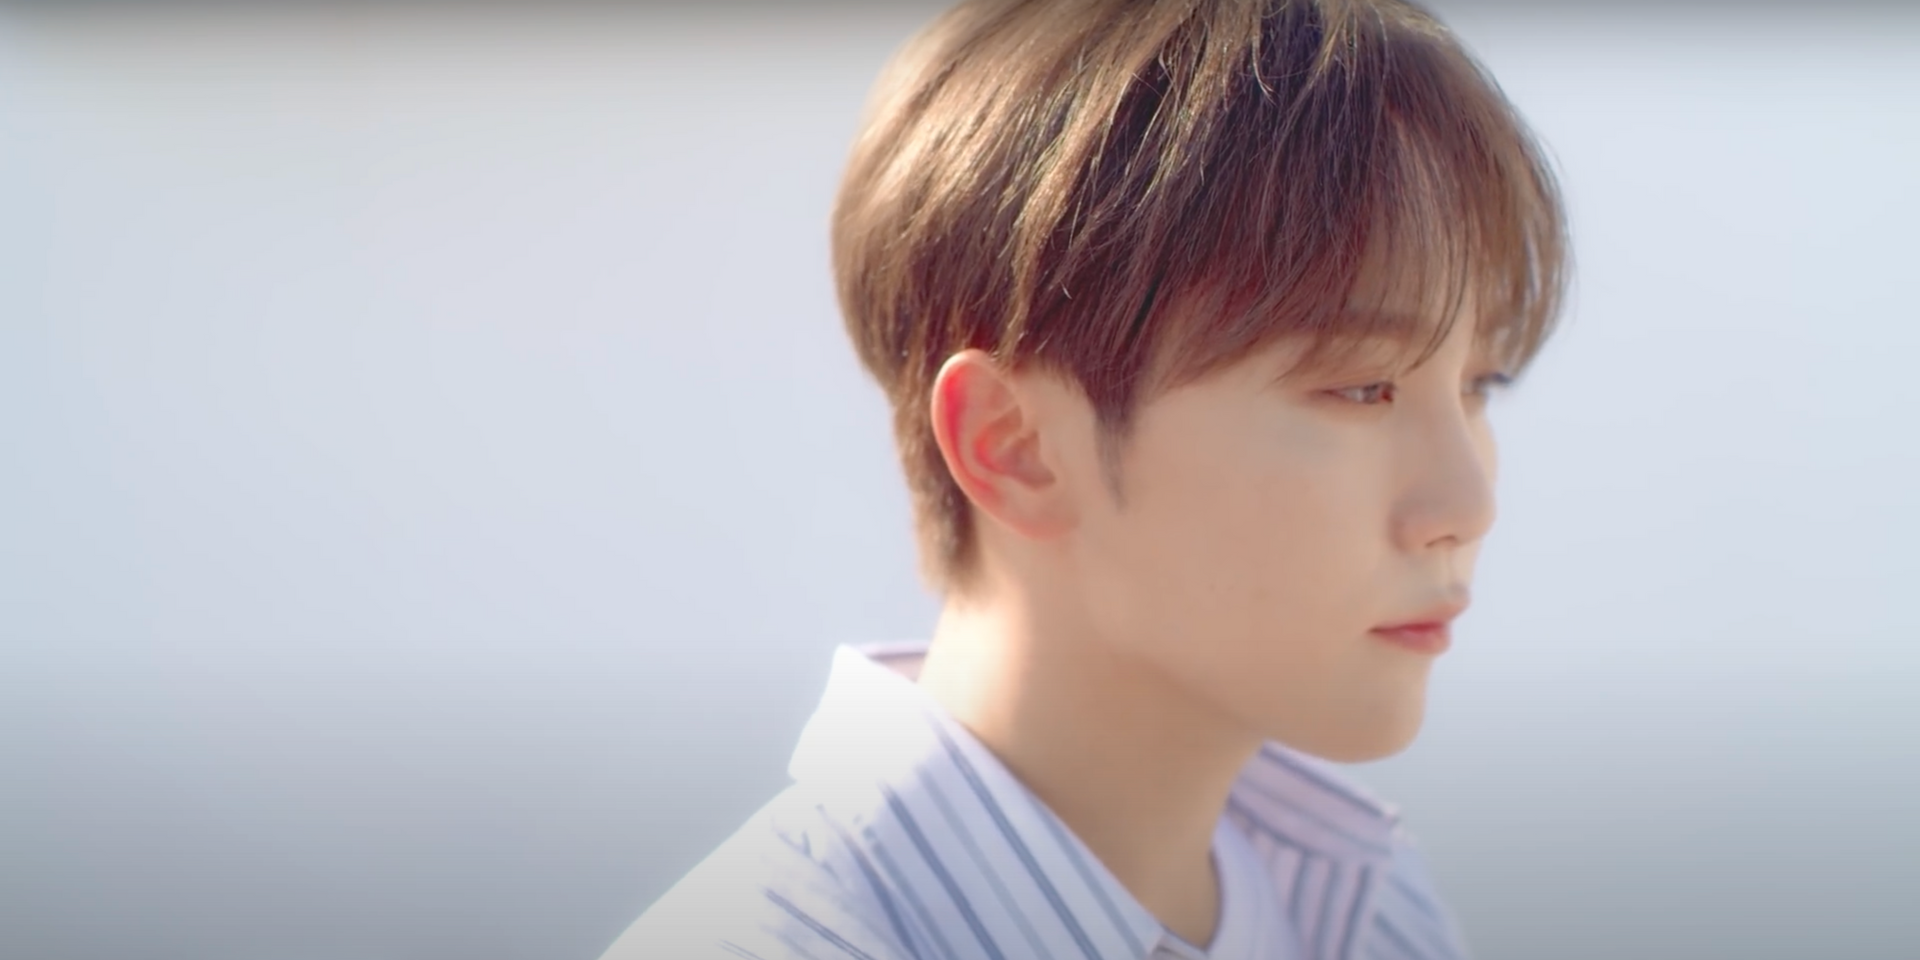 SEVENTEEN's SEUNGKWAN covers Taeyeon's 'Drawing Our Moments' for #17Studio – watch